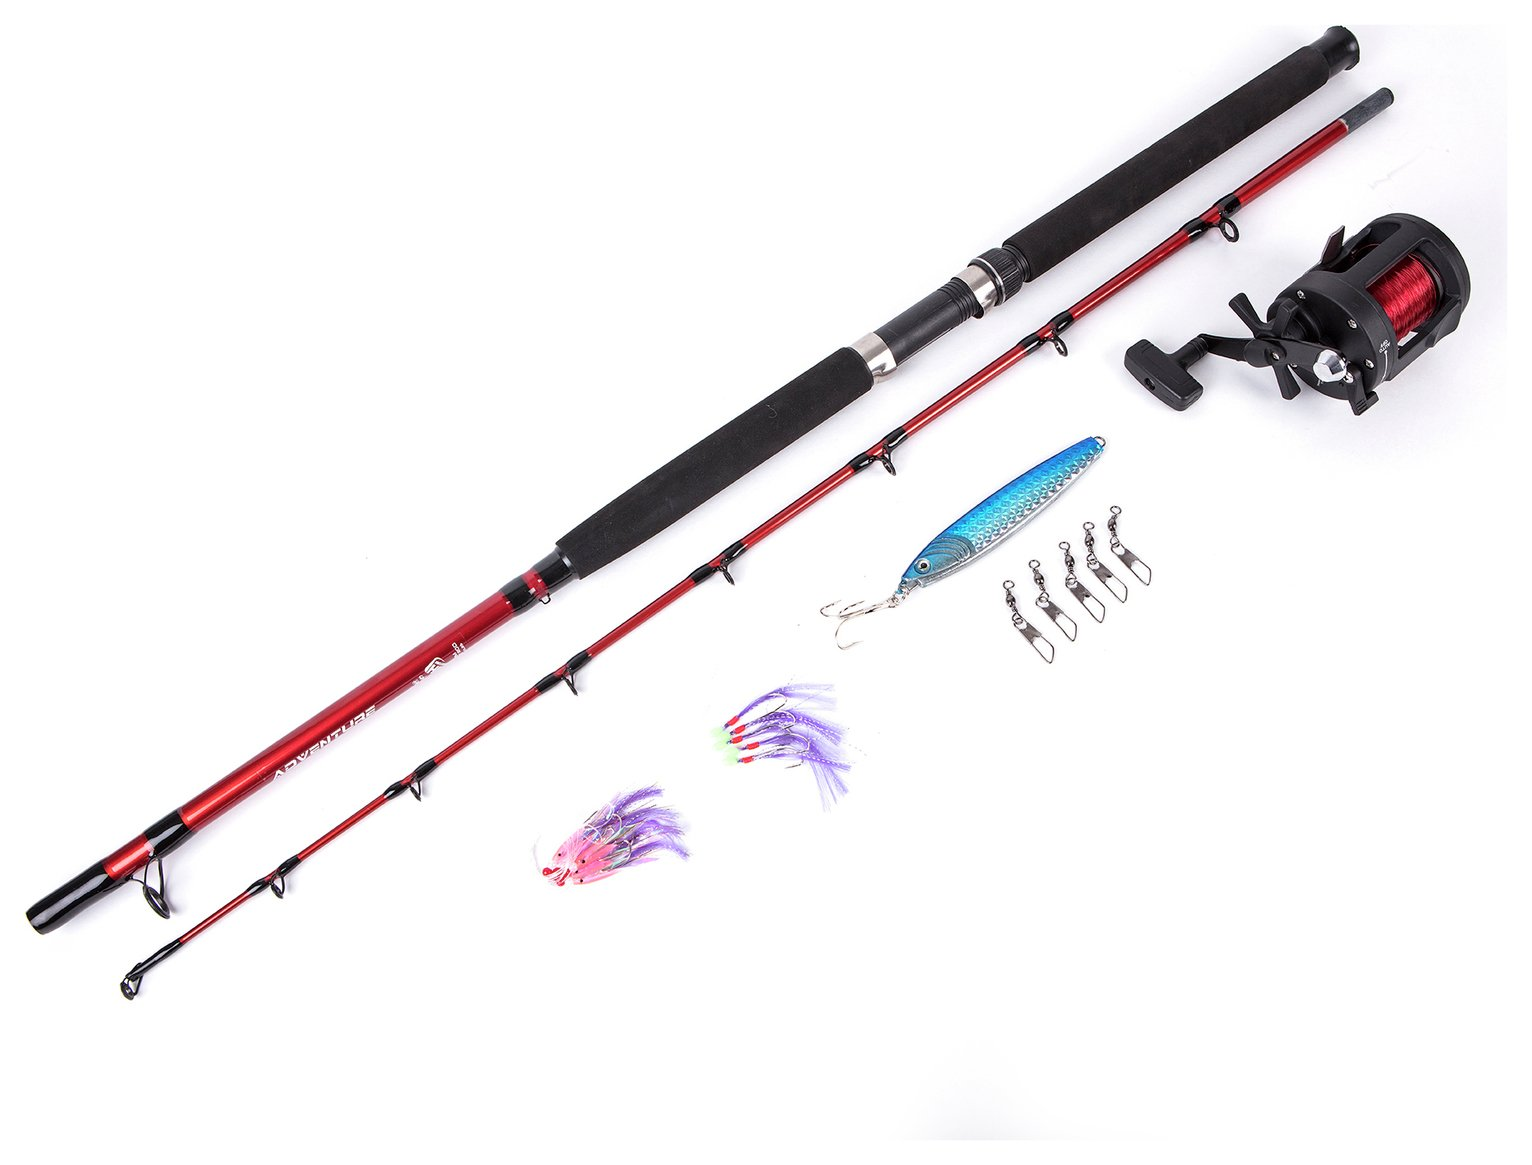 Matt Hayes Adventure Boat Fishing Rod, Reel & Accessories